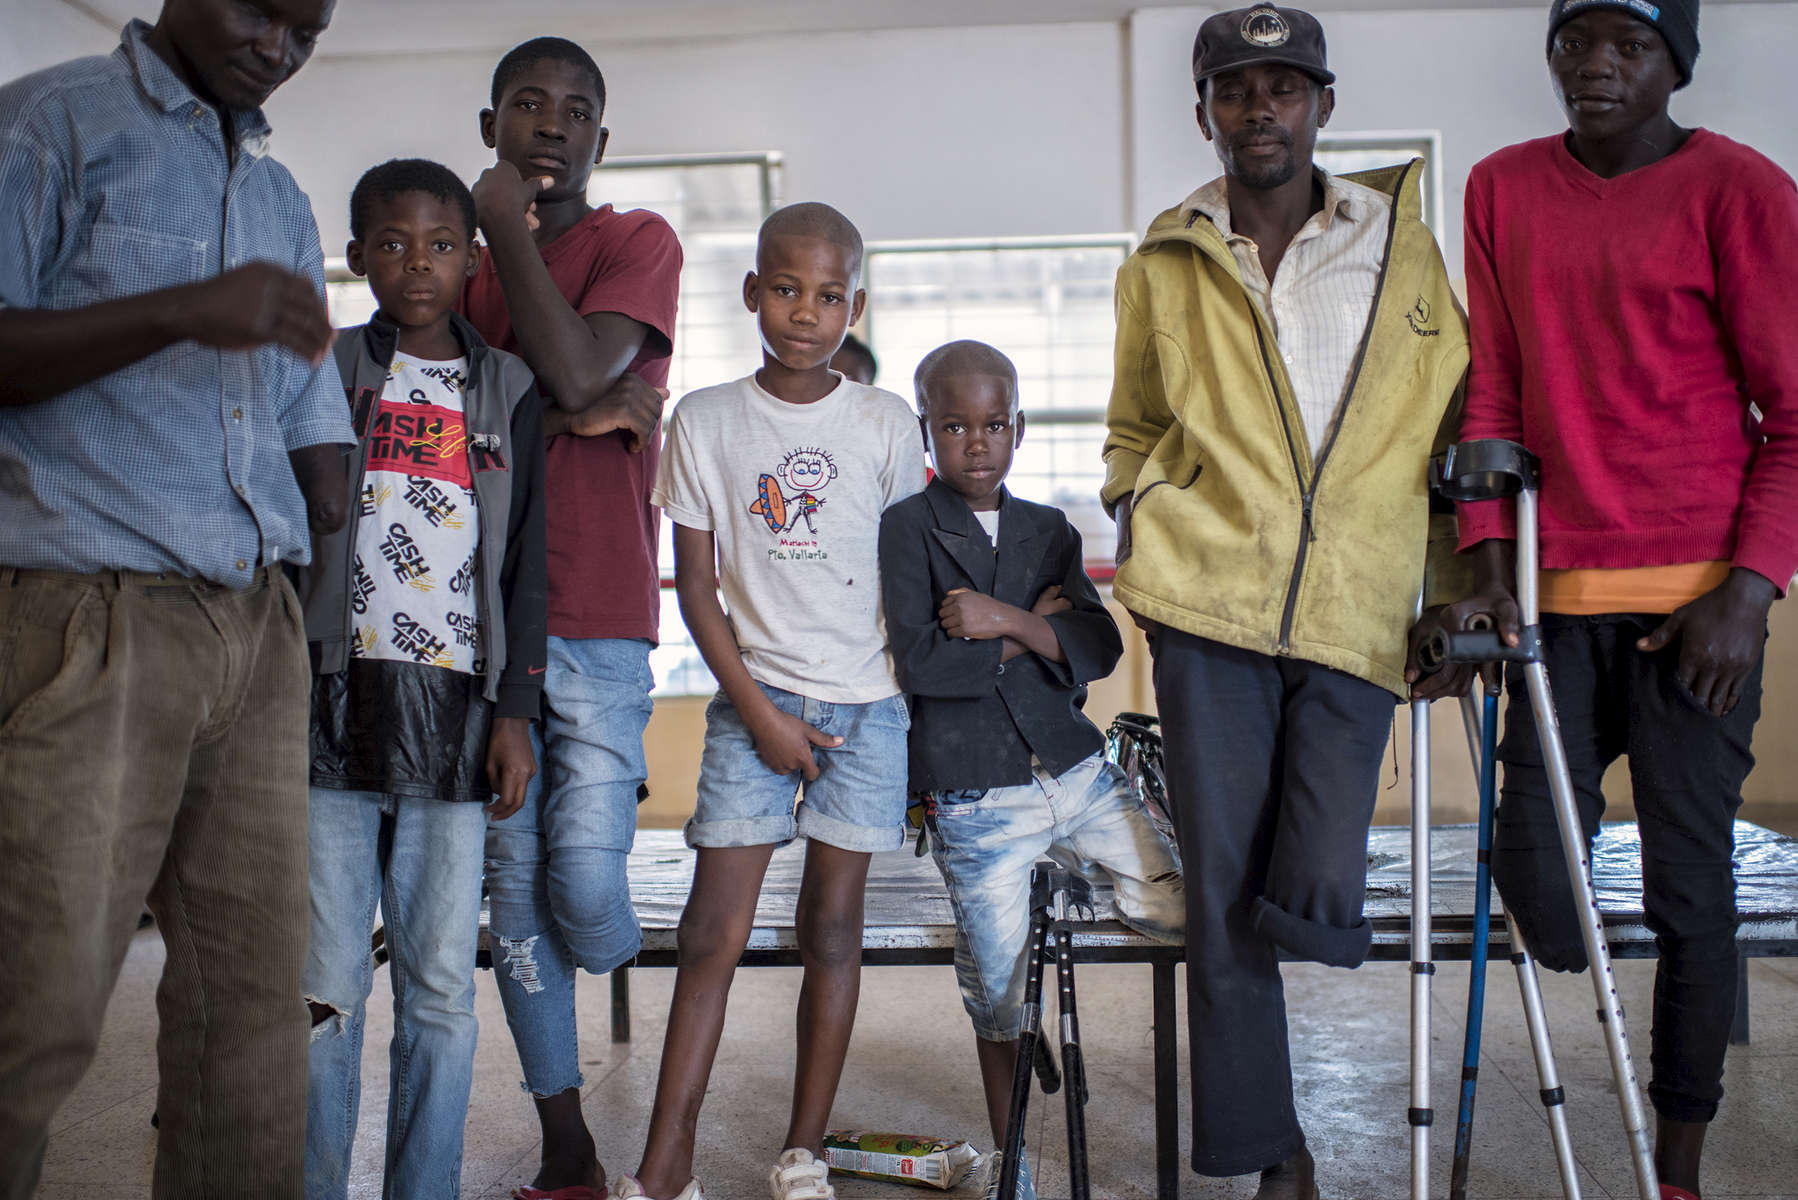 May 10, 2018: HUAMBO, ANGOLA - A group of boys who were seriously wounded while playing with a mortar round in December 2016 sit with older men, who are also mine accident victims at the rehabilitation center of a hospital in Huambo. Twelve year-old Antonio (patterned shirt), fourteen year-old Jeremy (red shirt), ten year-old Mario (white shirt) and eight year-old Manuel (black jacket) survived the accident, while their friend Frederico, ten, was killed. While there is an enormous need for prosthetic limbs in Angola, a country with an enormous number of mines laid during the civil war, they are unable to afford to import the materials necessary to make them.